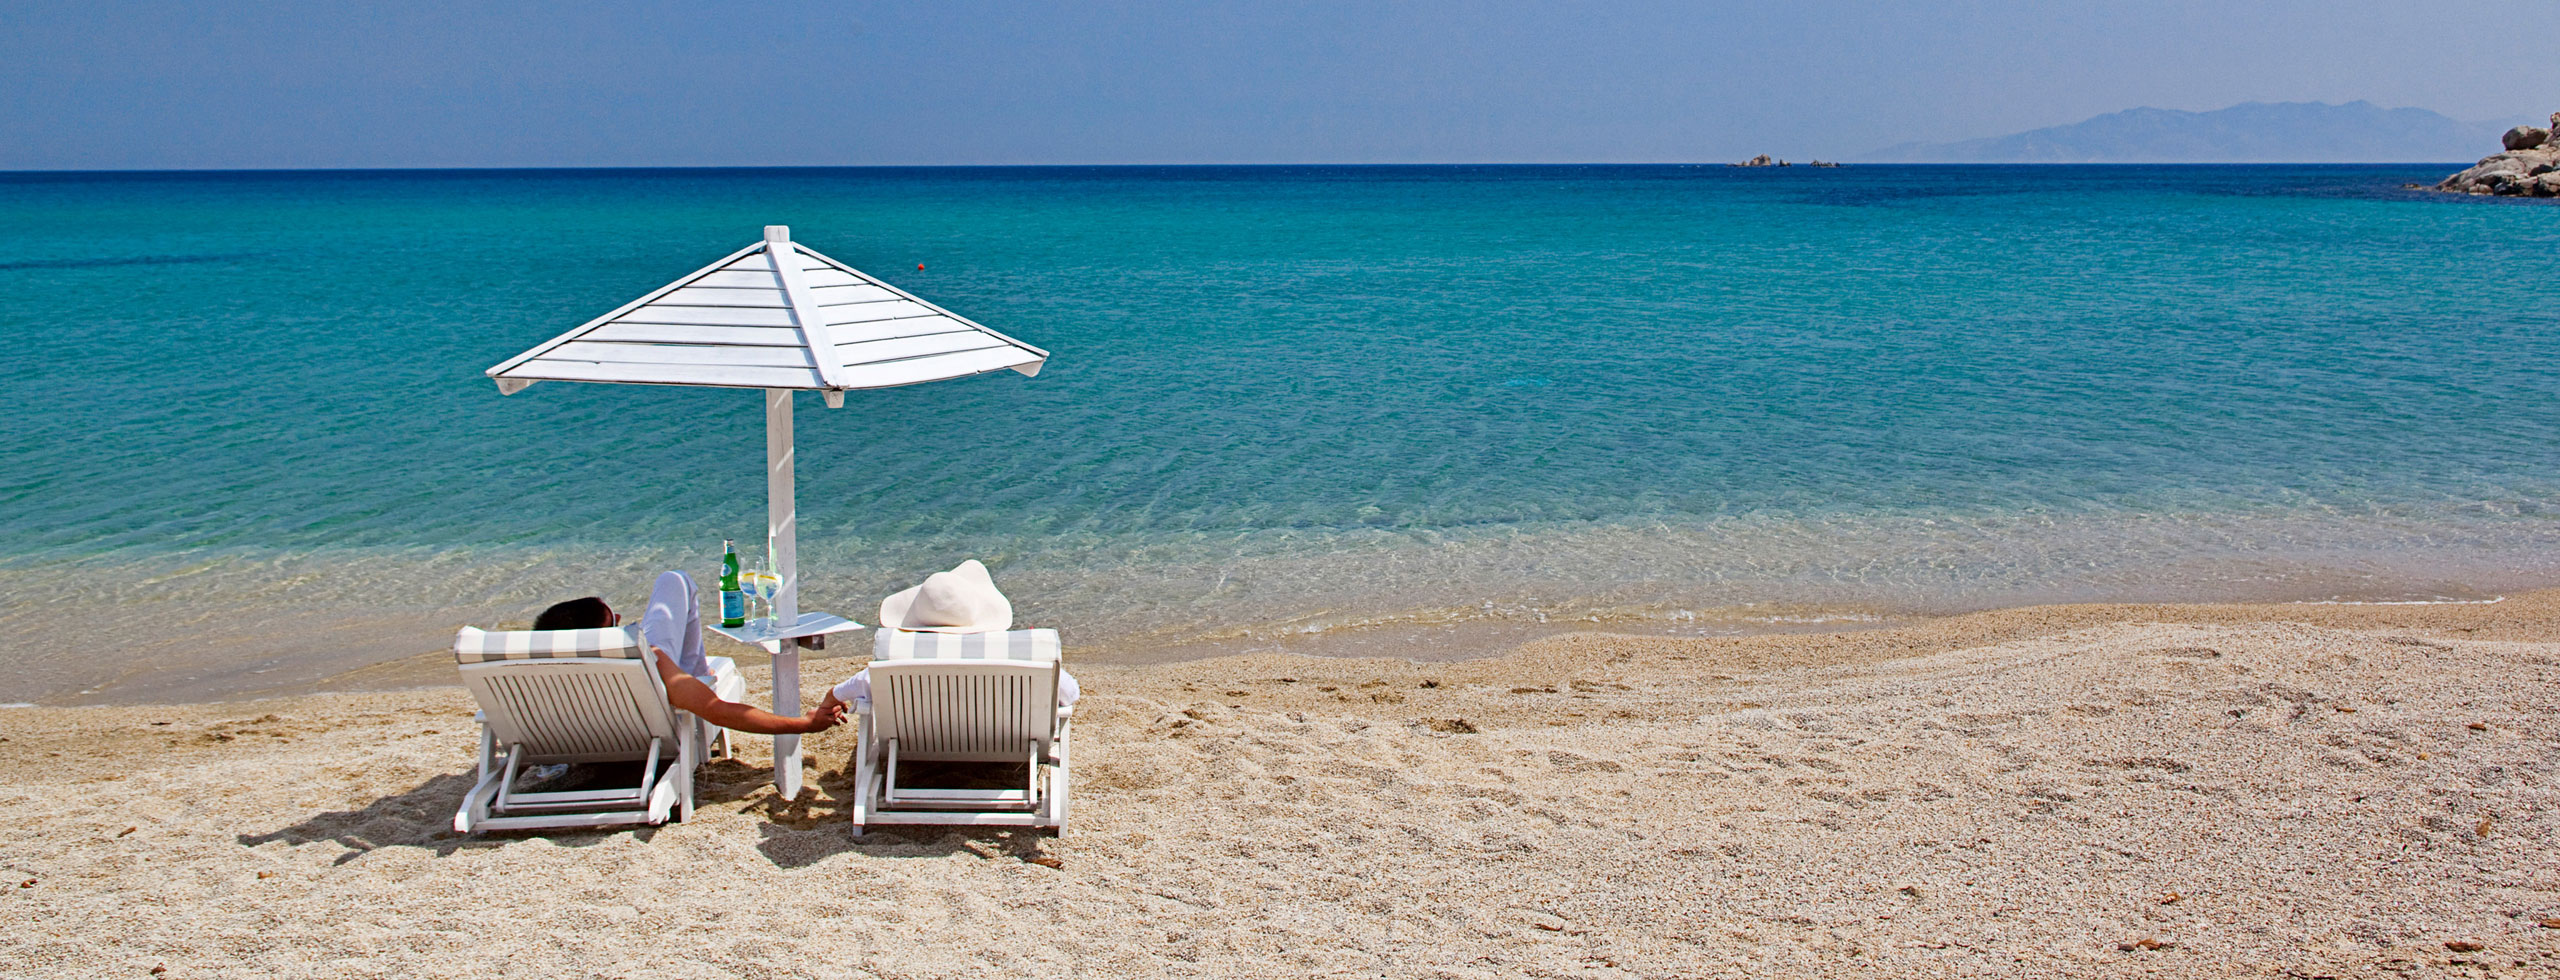 Greece Travel Packages Athens To Naxos And Santorini Vacation Tour - Greece travel packages